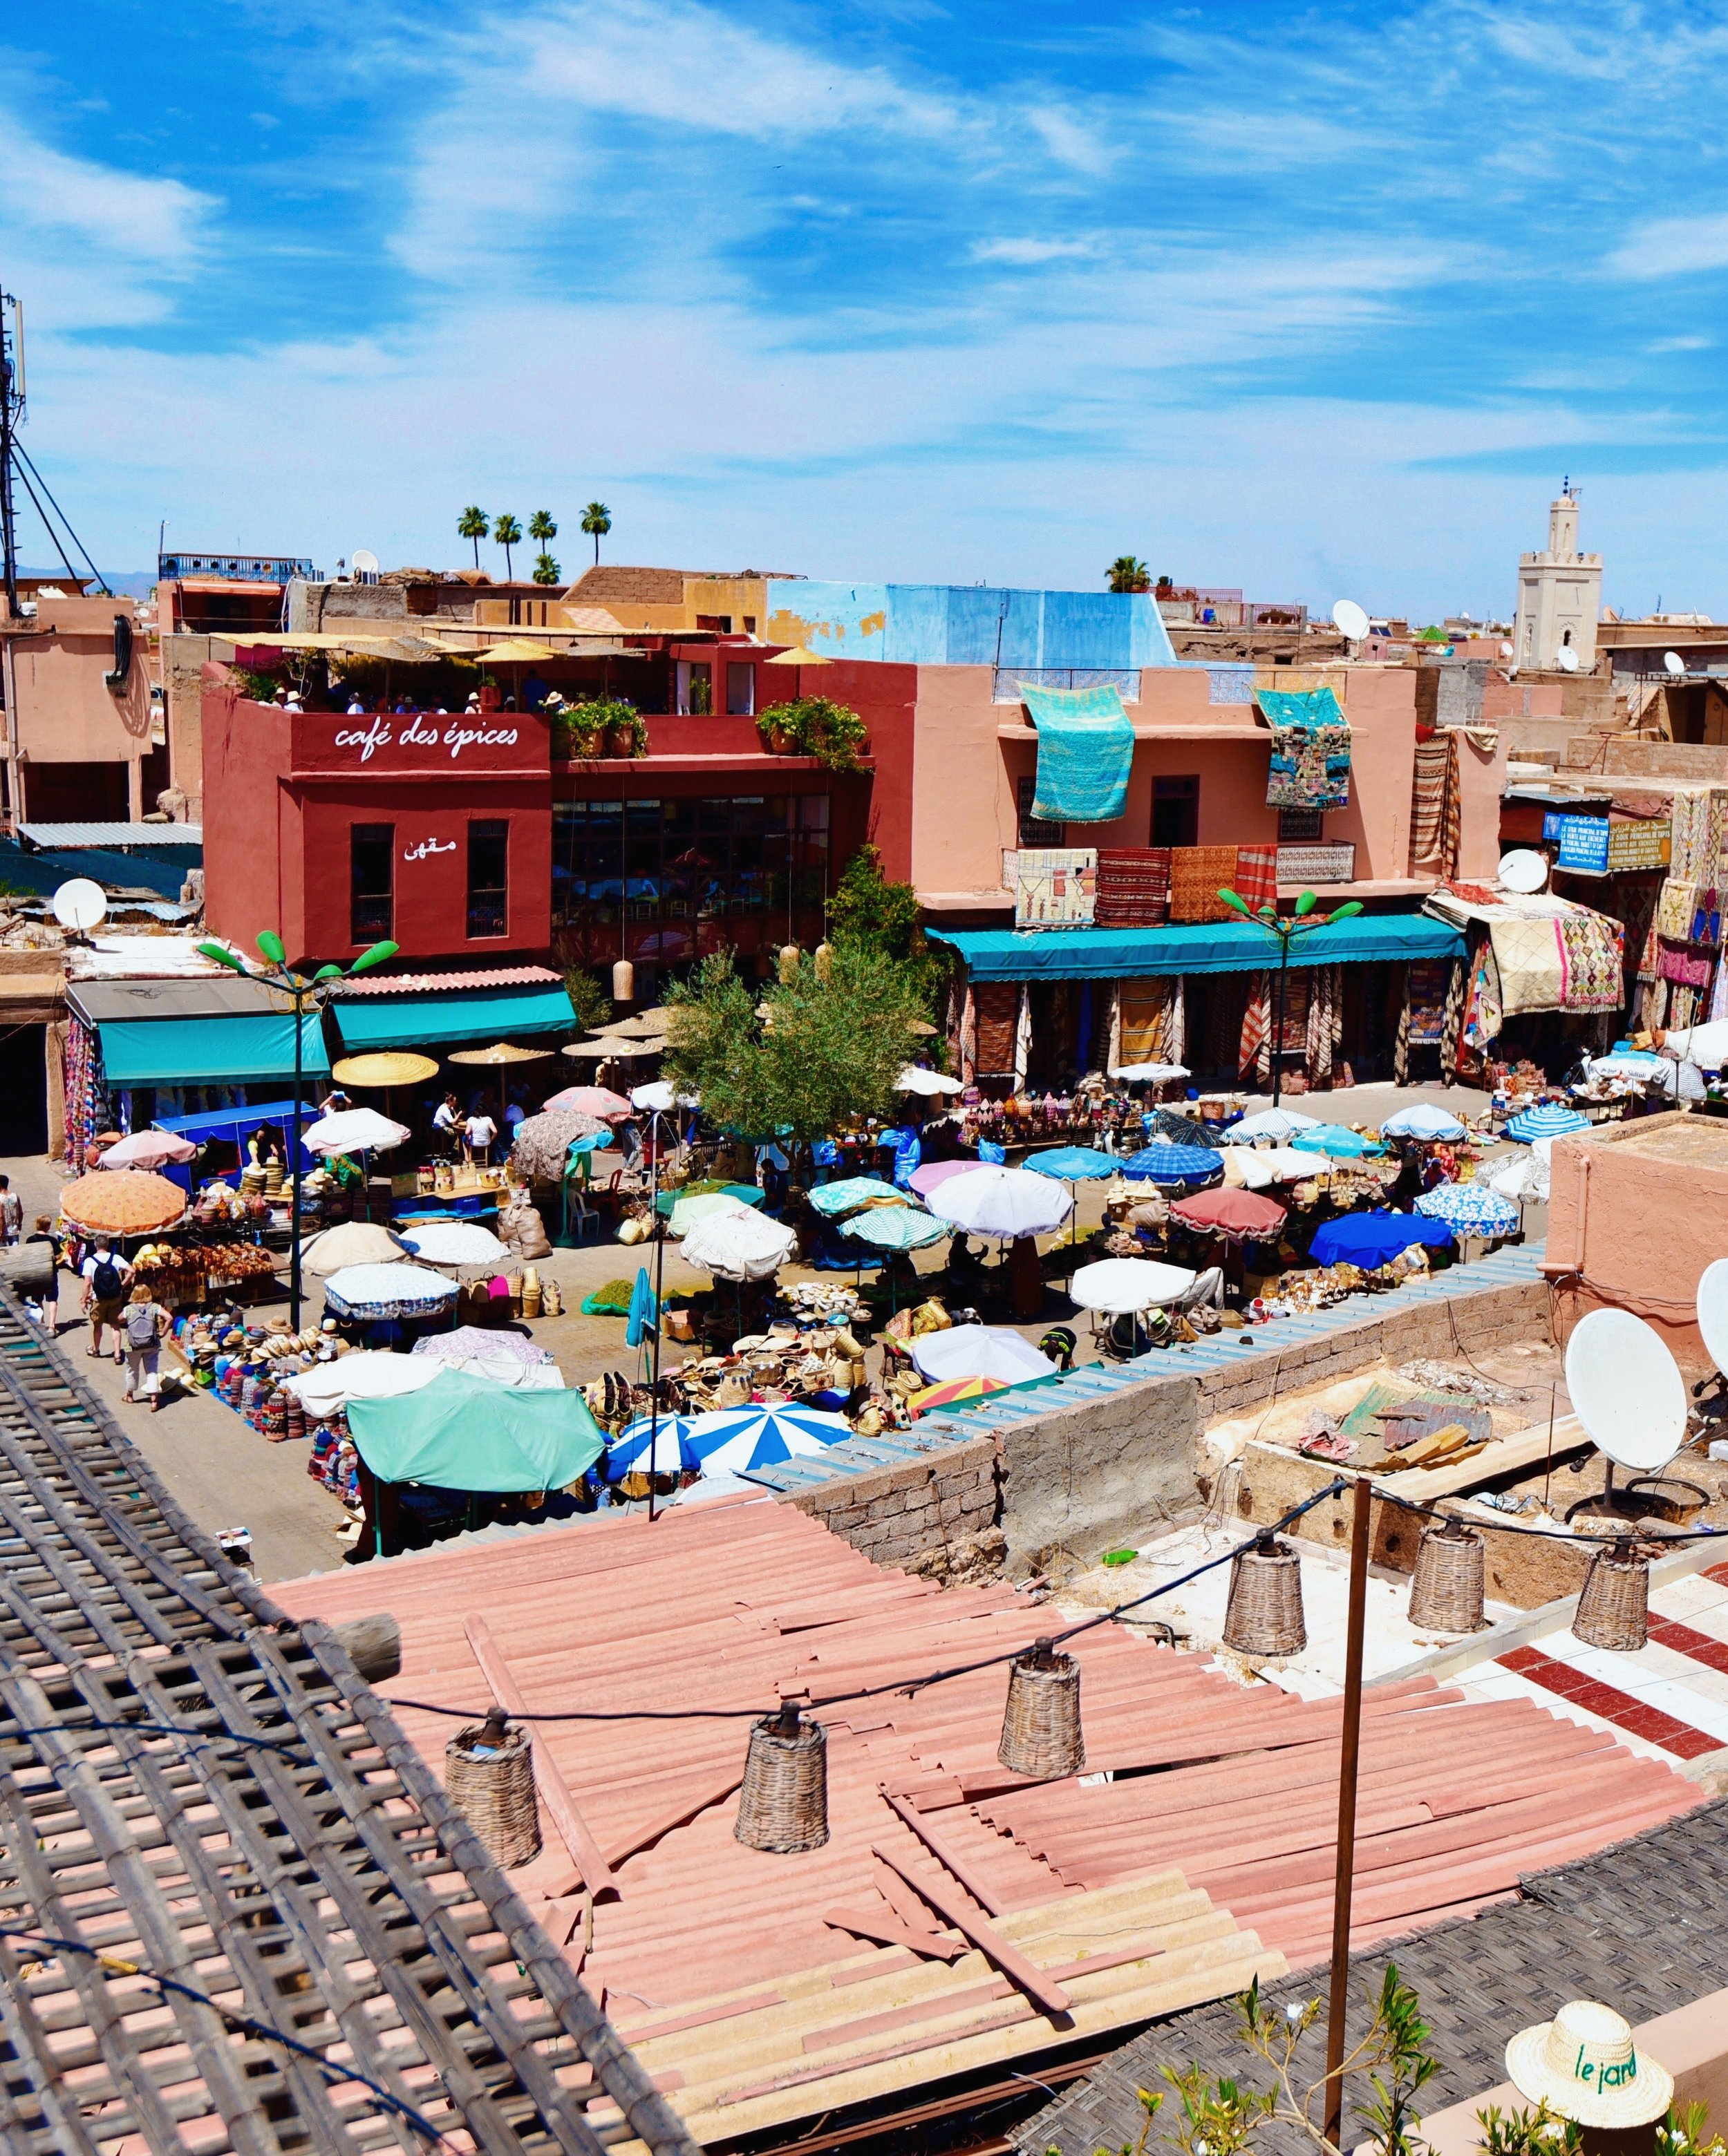 Lively Journey - Le Nomad, Marrakech